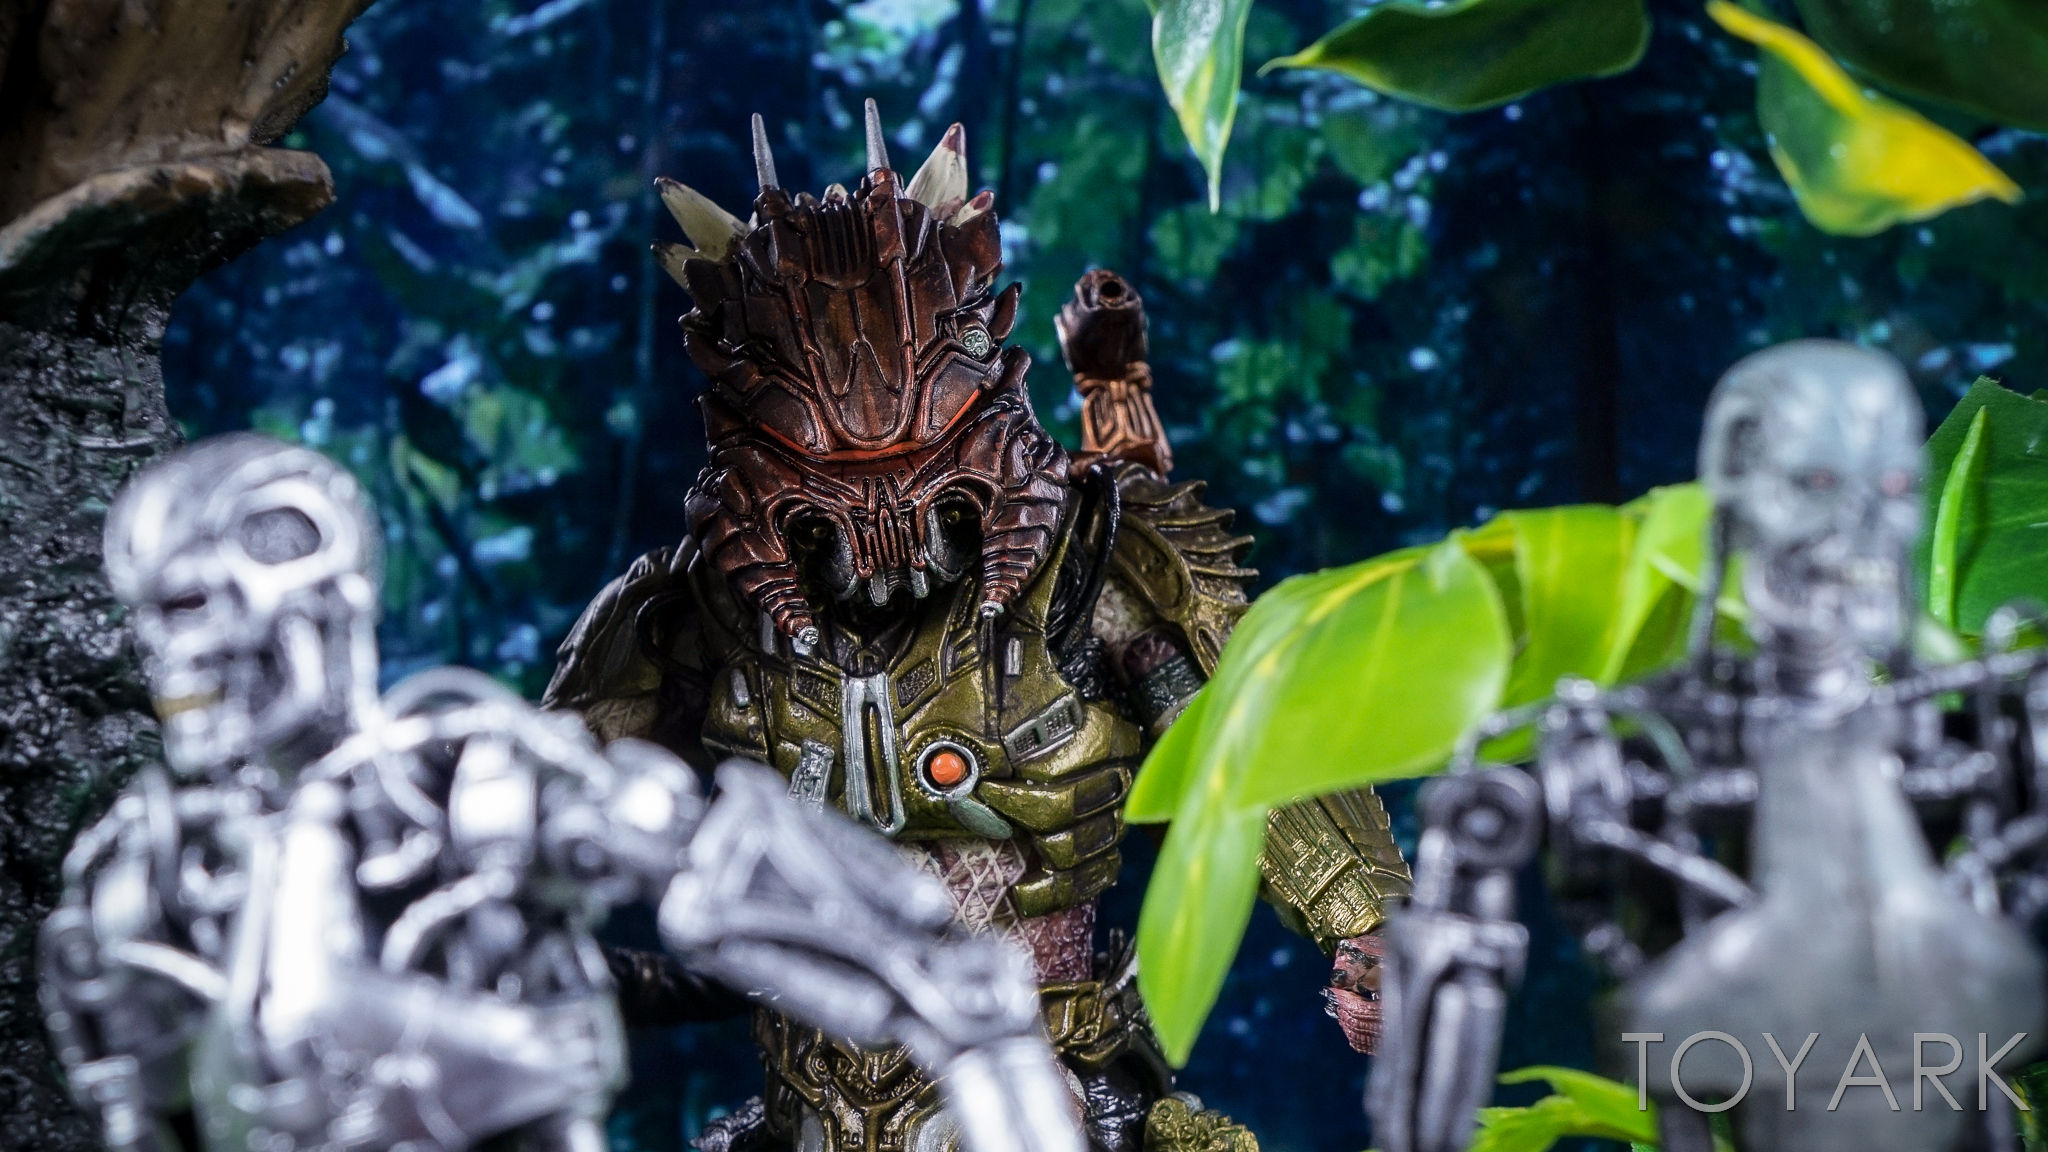 http://news.toyark.com/wp-content/uploads/sites/4/2016/10/Predator-Series-16-NECA-148.jpg